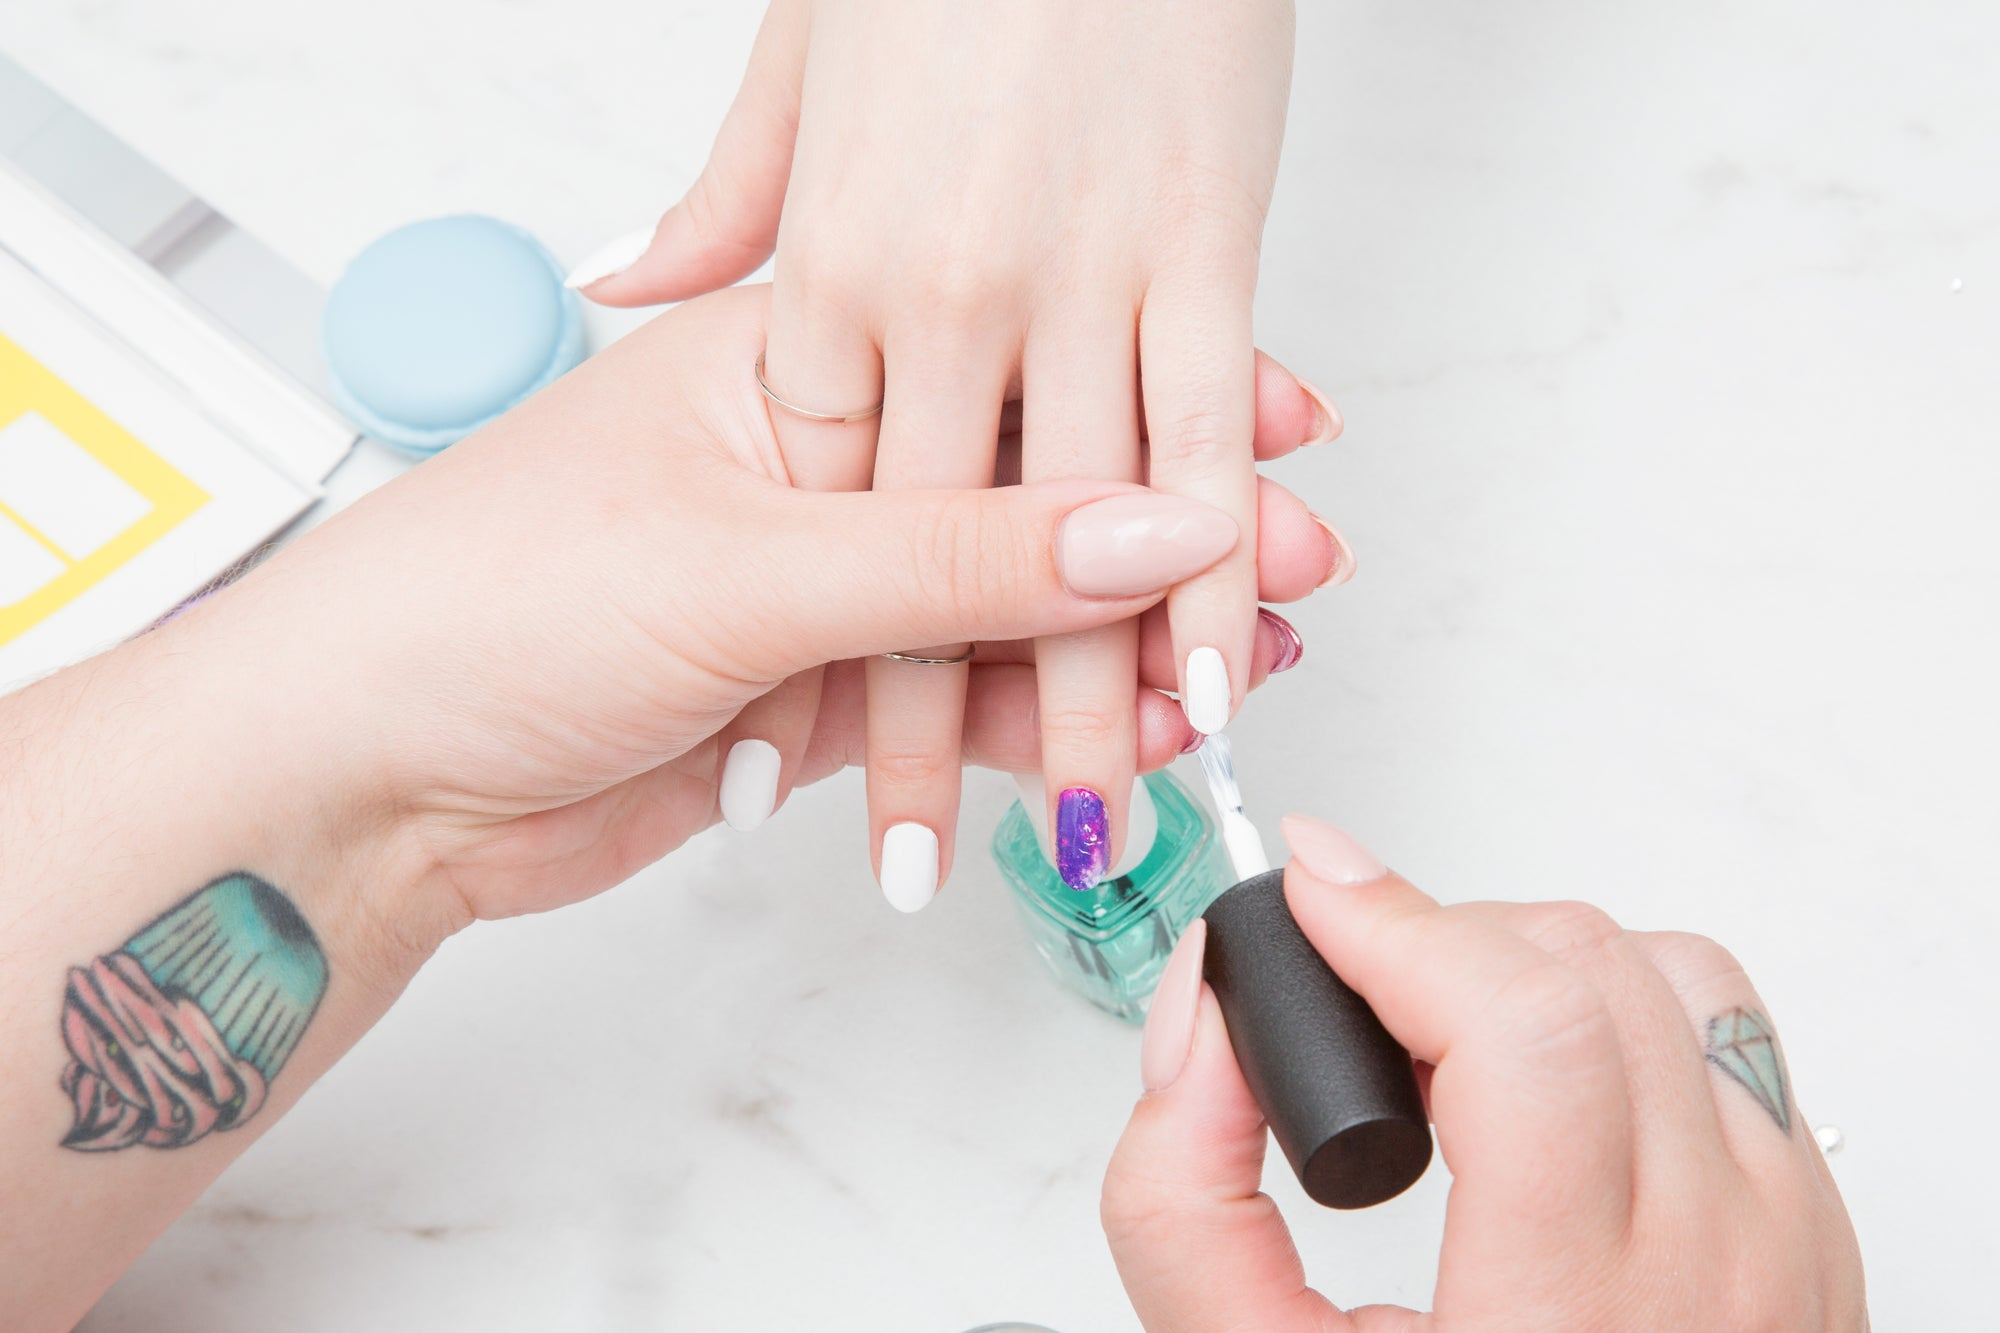 Zynergy Beauty Salon in Gilbert, Arizona offers full nail services, including manicures, pedicures, gel polish, dips and fills. Check pricing and book you appointment online!